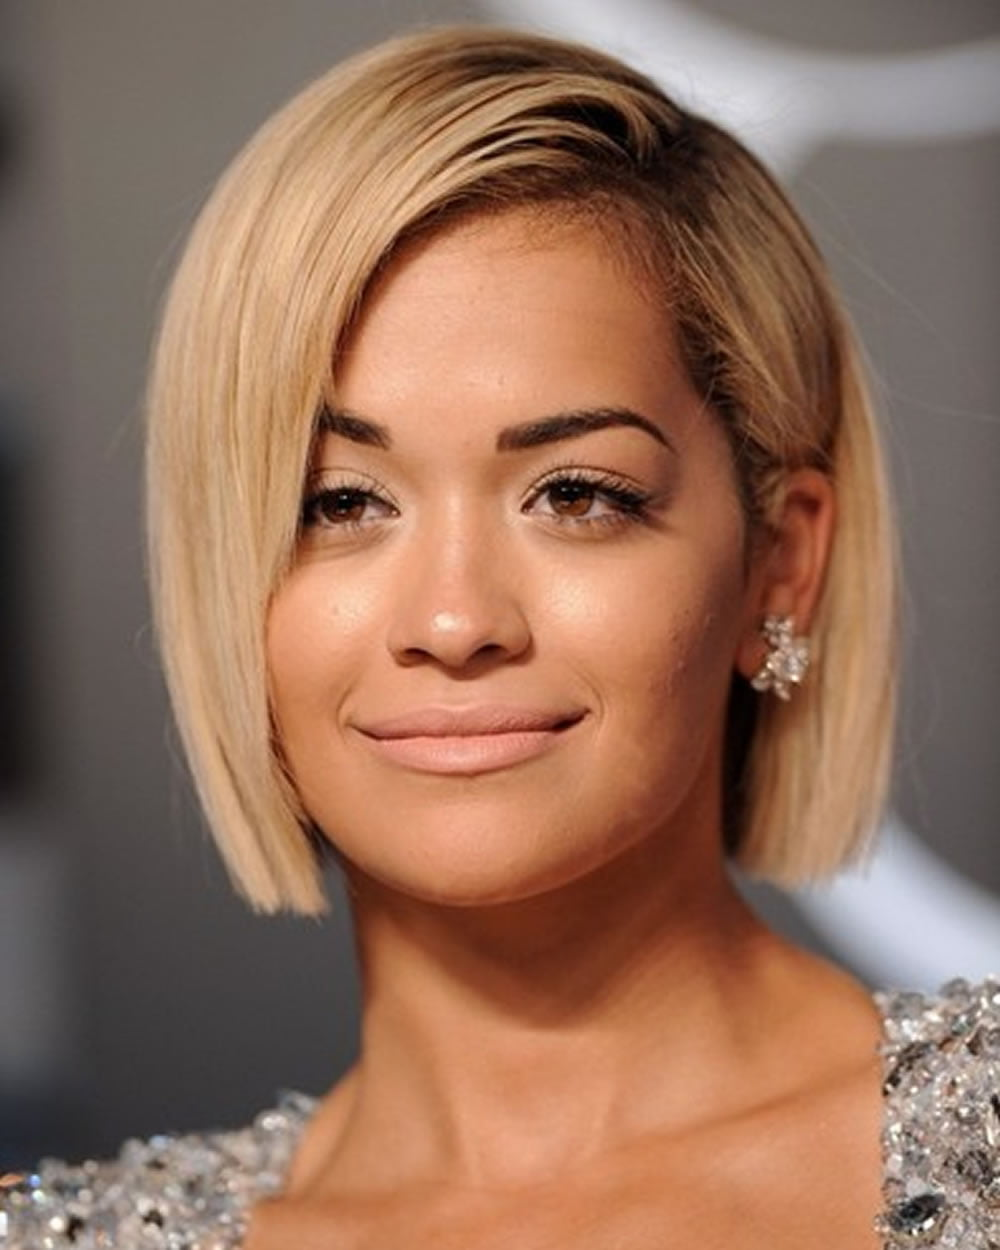 Rita Ora's Short (Pixie + Bob) Hairstyles for 2018